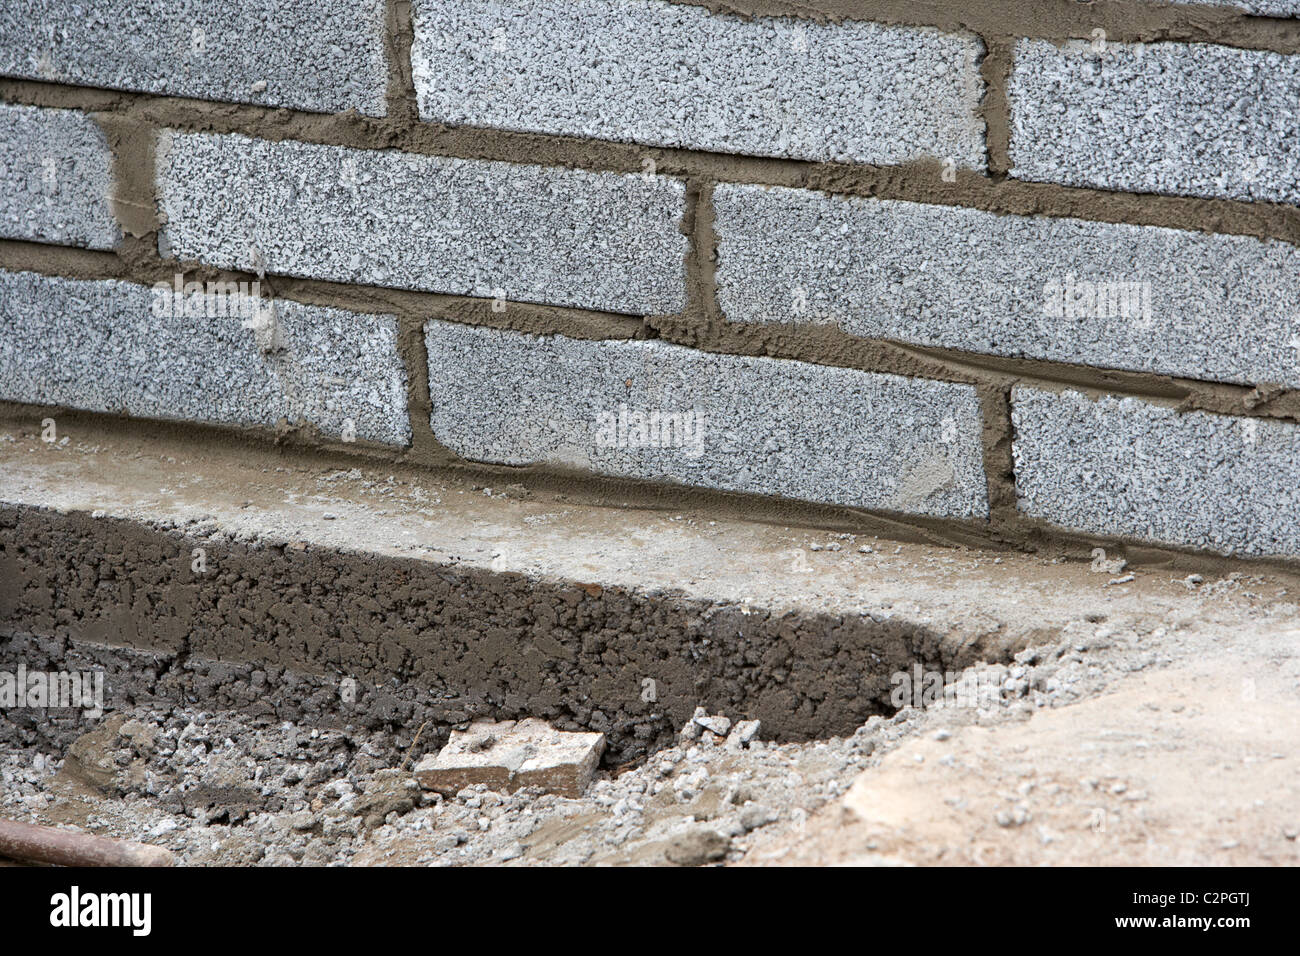 Charming Bricklaying Wall With Half Cement Breeze Blocks Building A Block Retaining  Wall On Concrete Foundations In